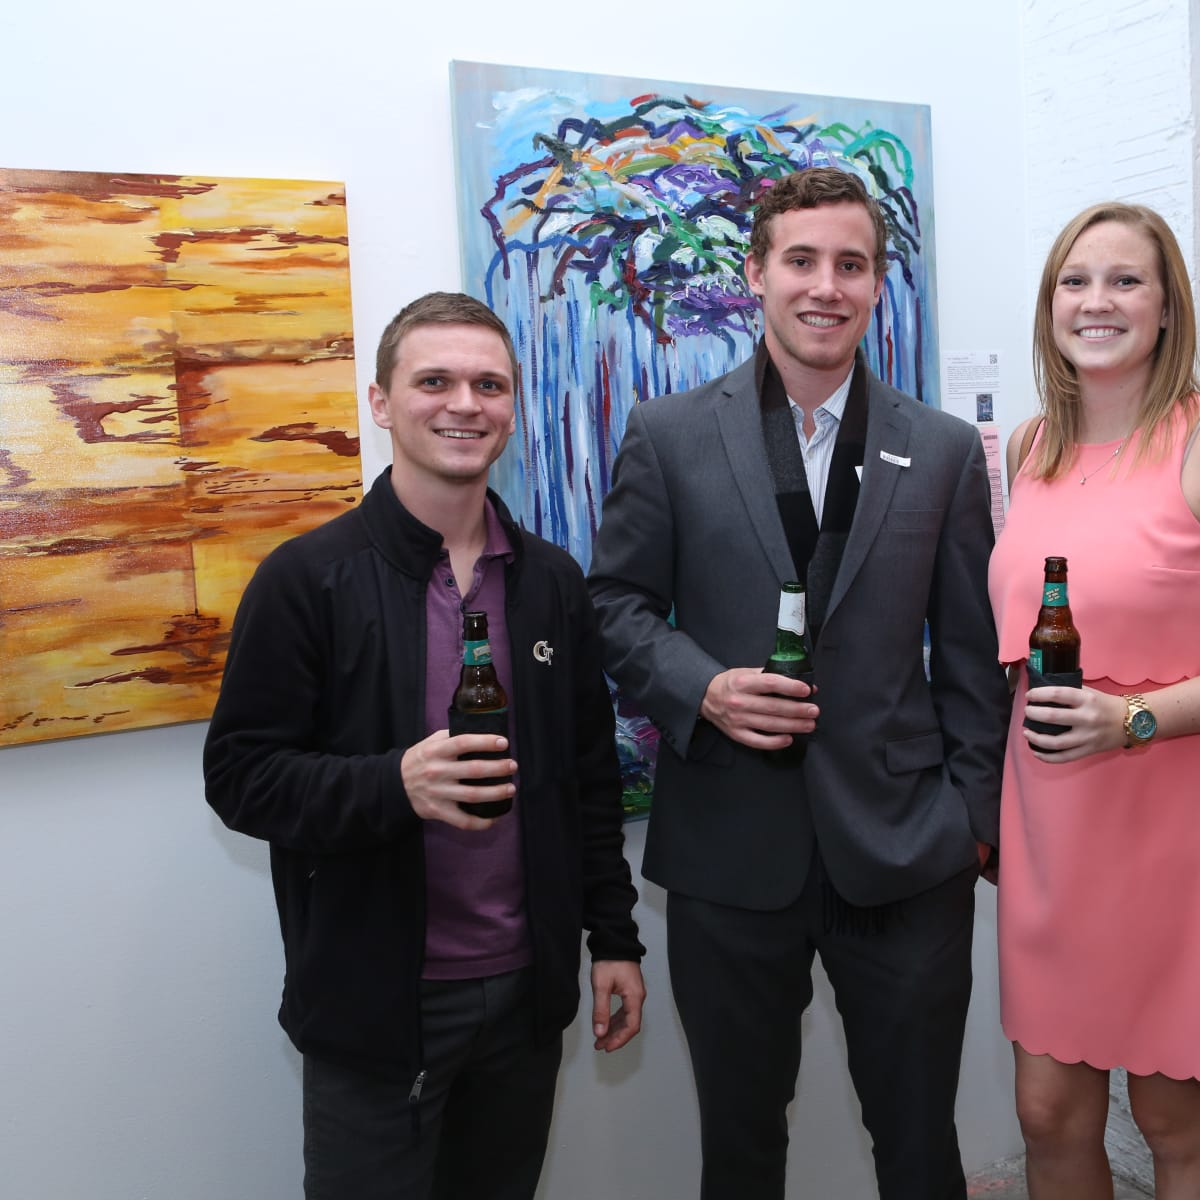 Carl Trovallo, Brian Anderson, Meredith Kendrick take a moment from bidding on artwork to pose for a photo at the 19th annual Art on the Avenue